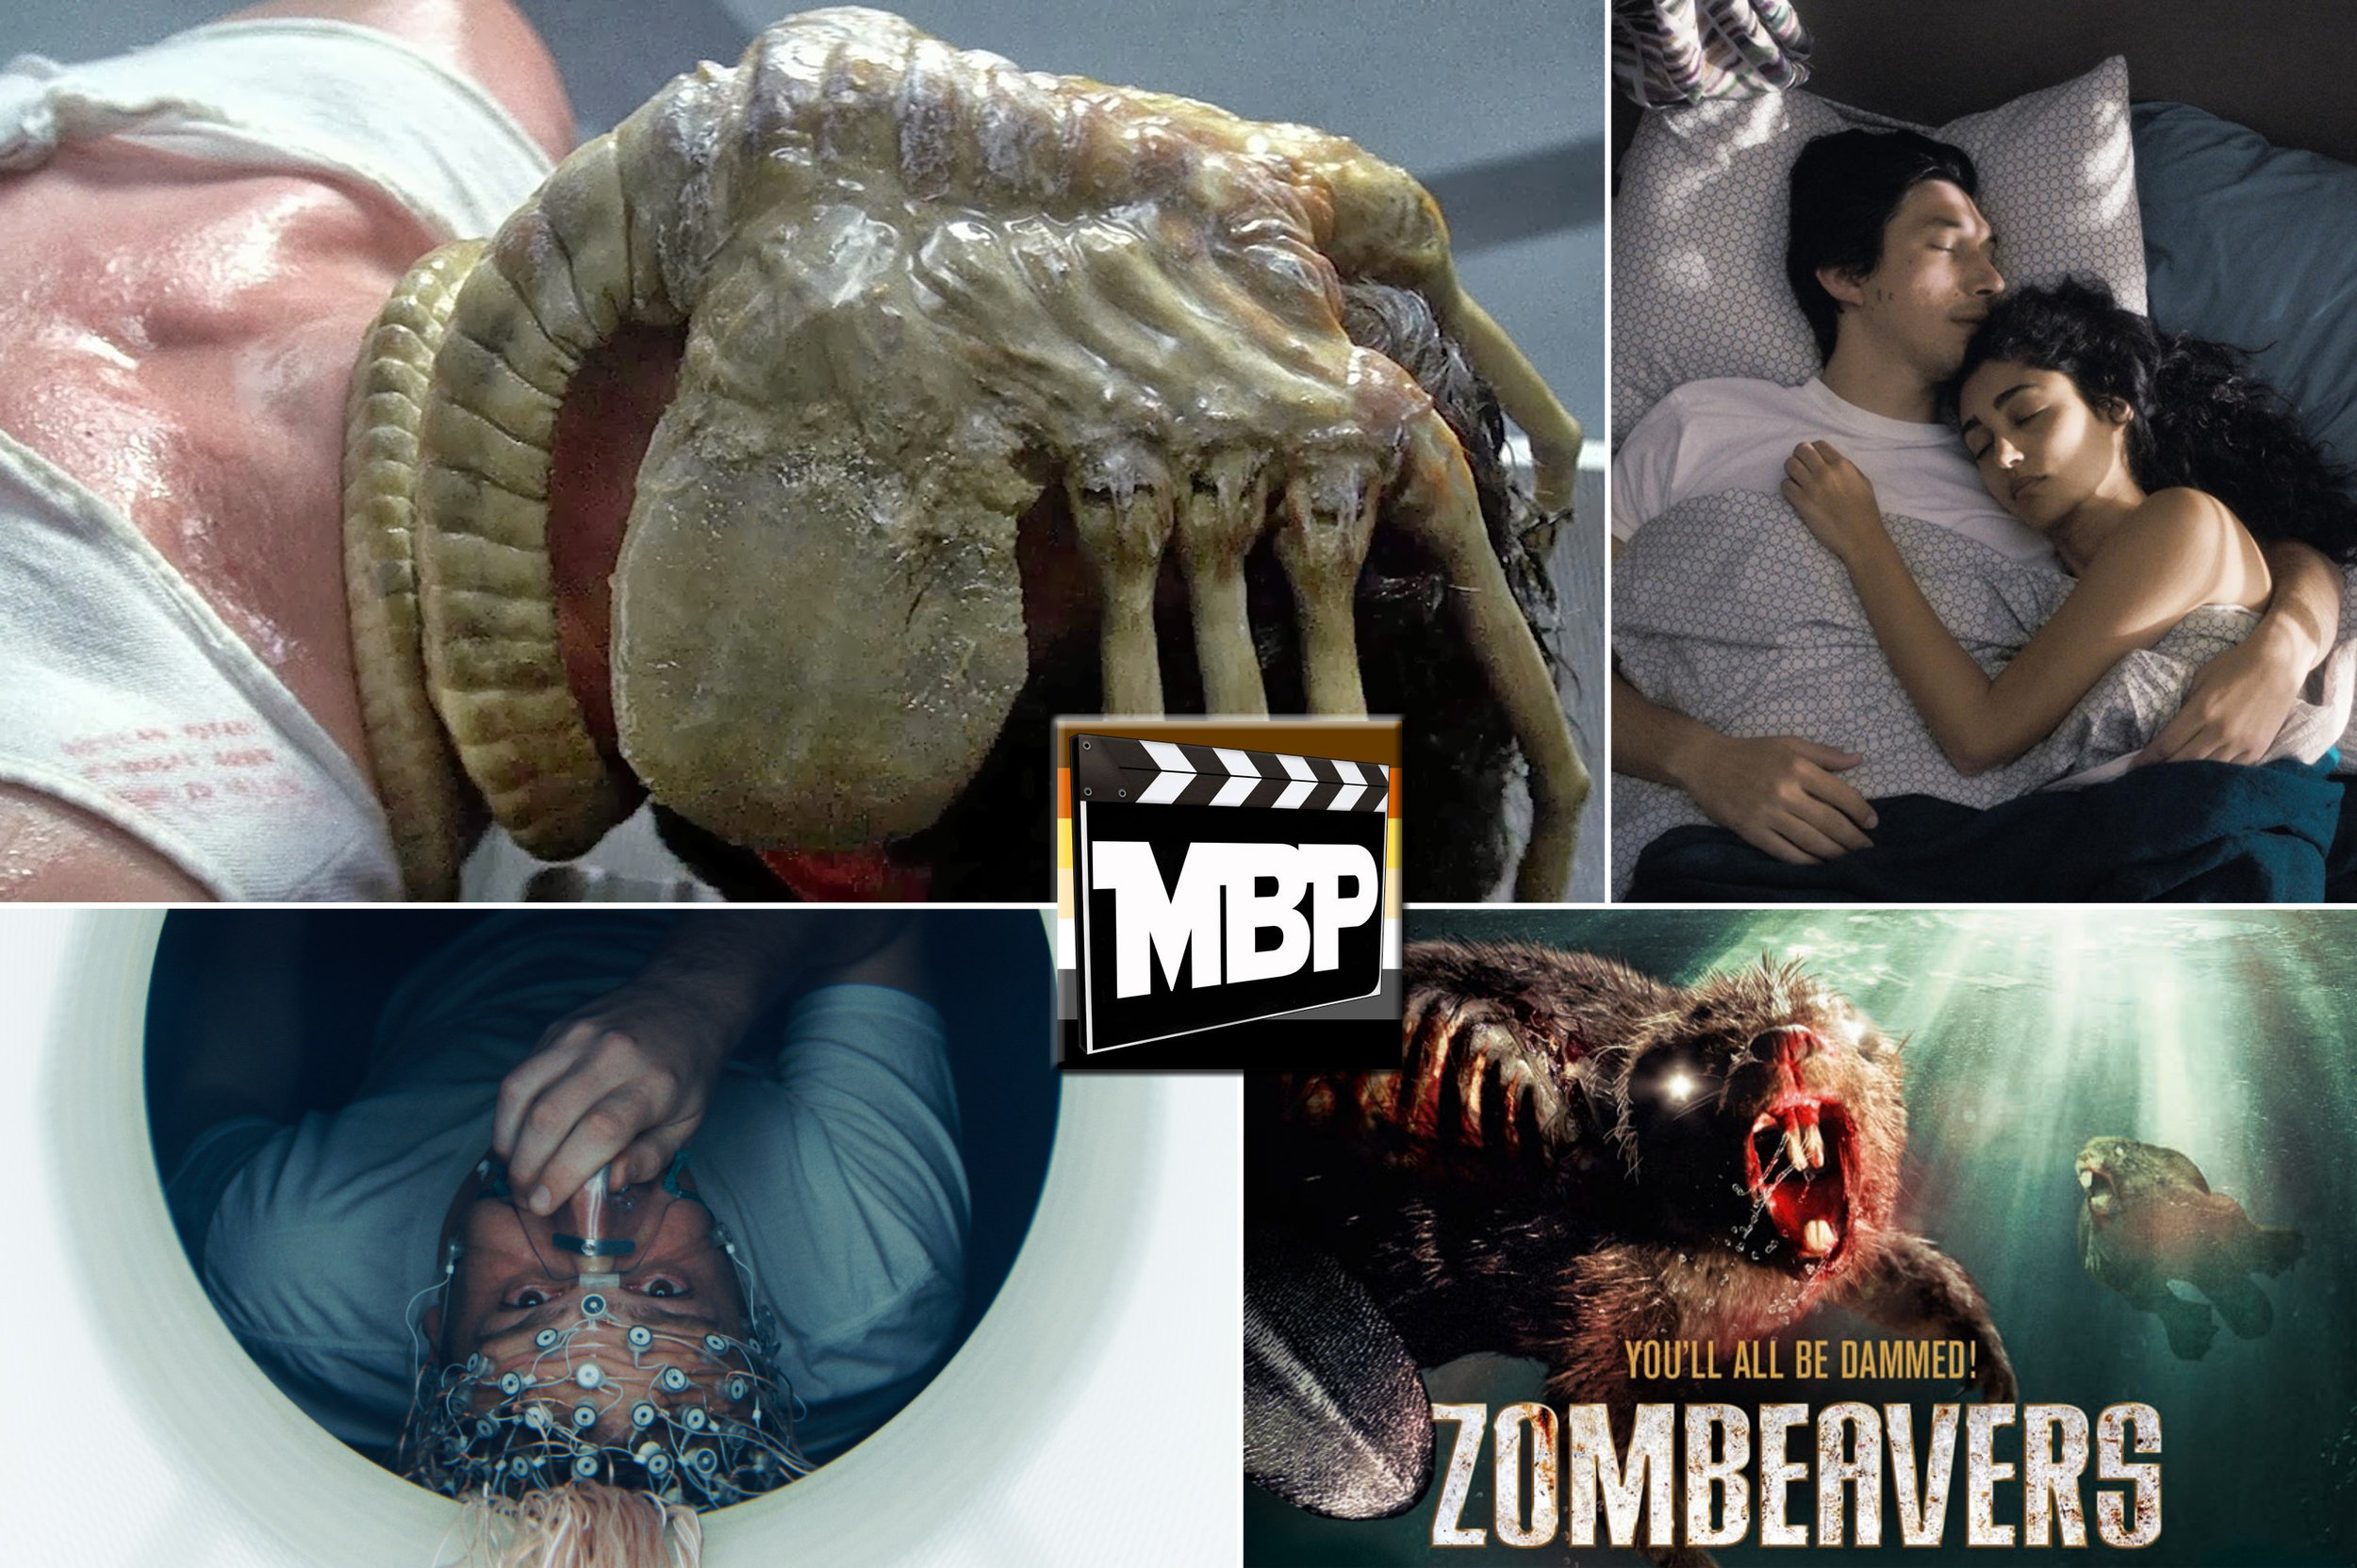 MBP e229 - 'Alien' and Pre-Summer VOD Catch-Up (4/14/17)    With 'Alien: Covenant' coming out soon, we decided to take a trip down memory lane and review the 1979 space horror classic 'Alien.' We also share some of our favorite streaming choices. Click through to listen!